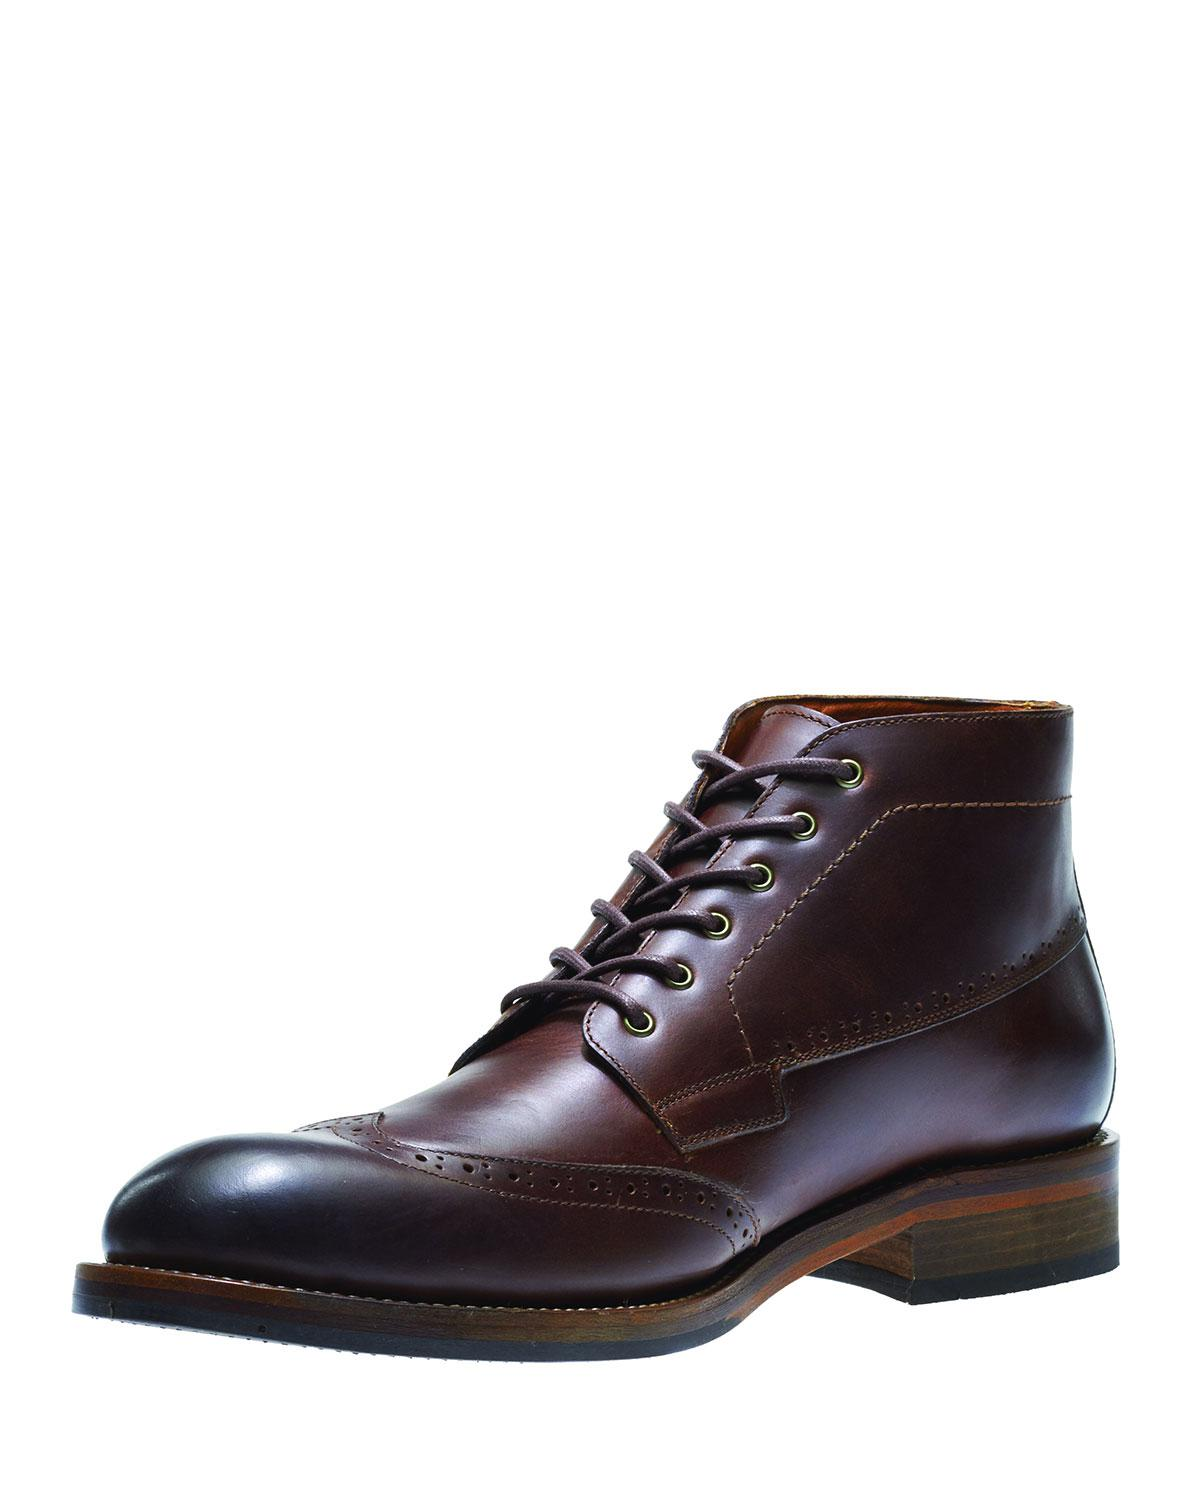 db4c2153597 Men's Brown Harwell Leather Wing-tip Boot